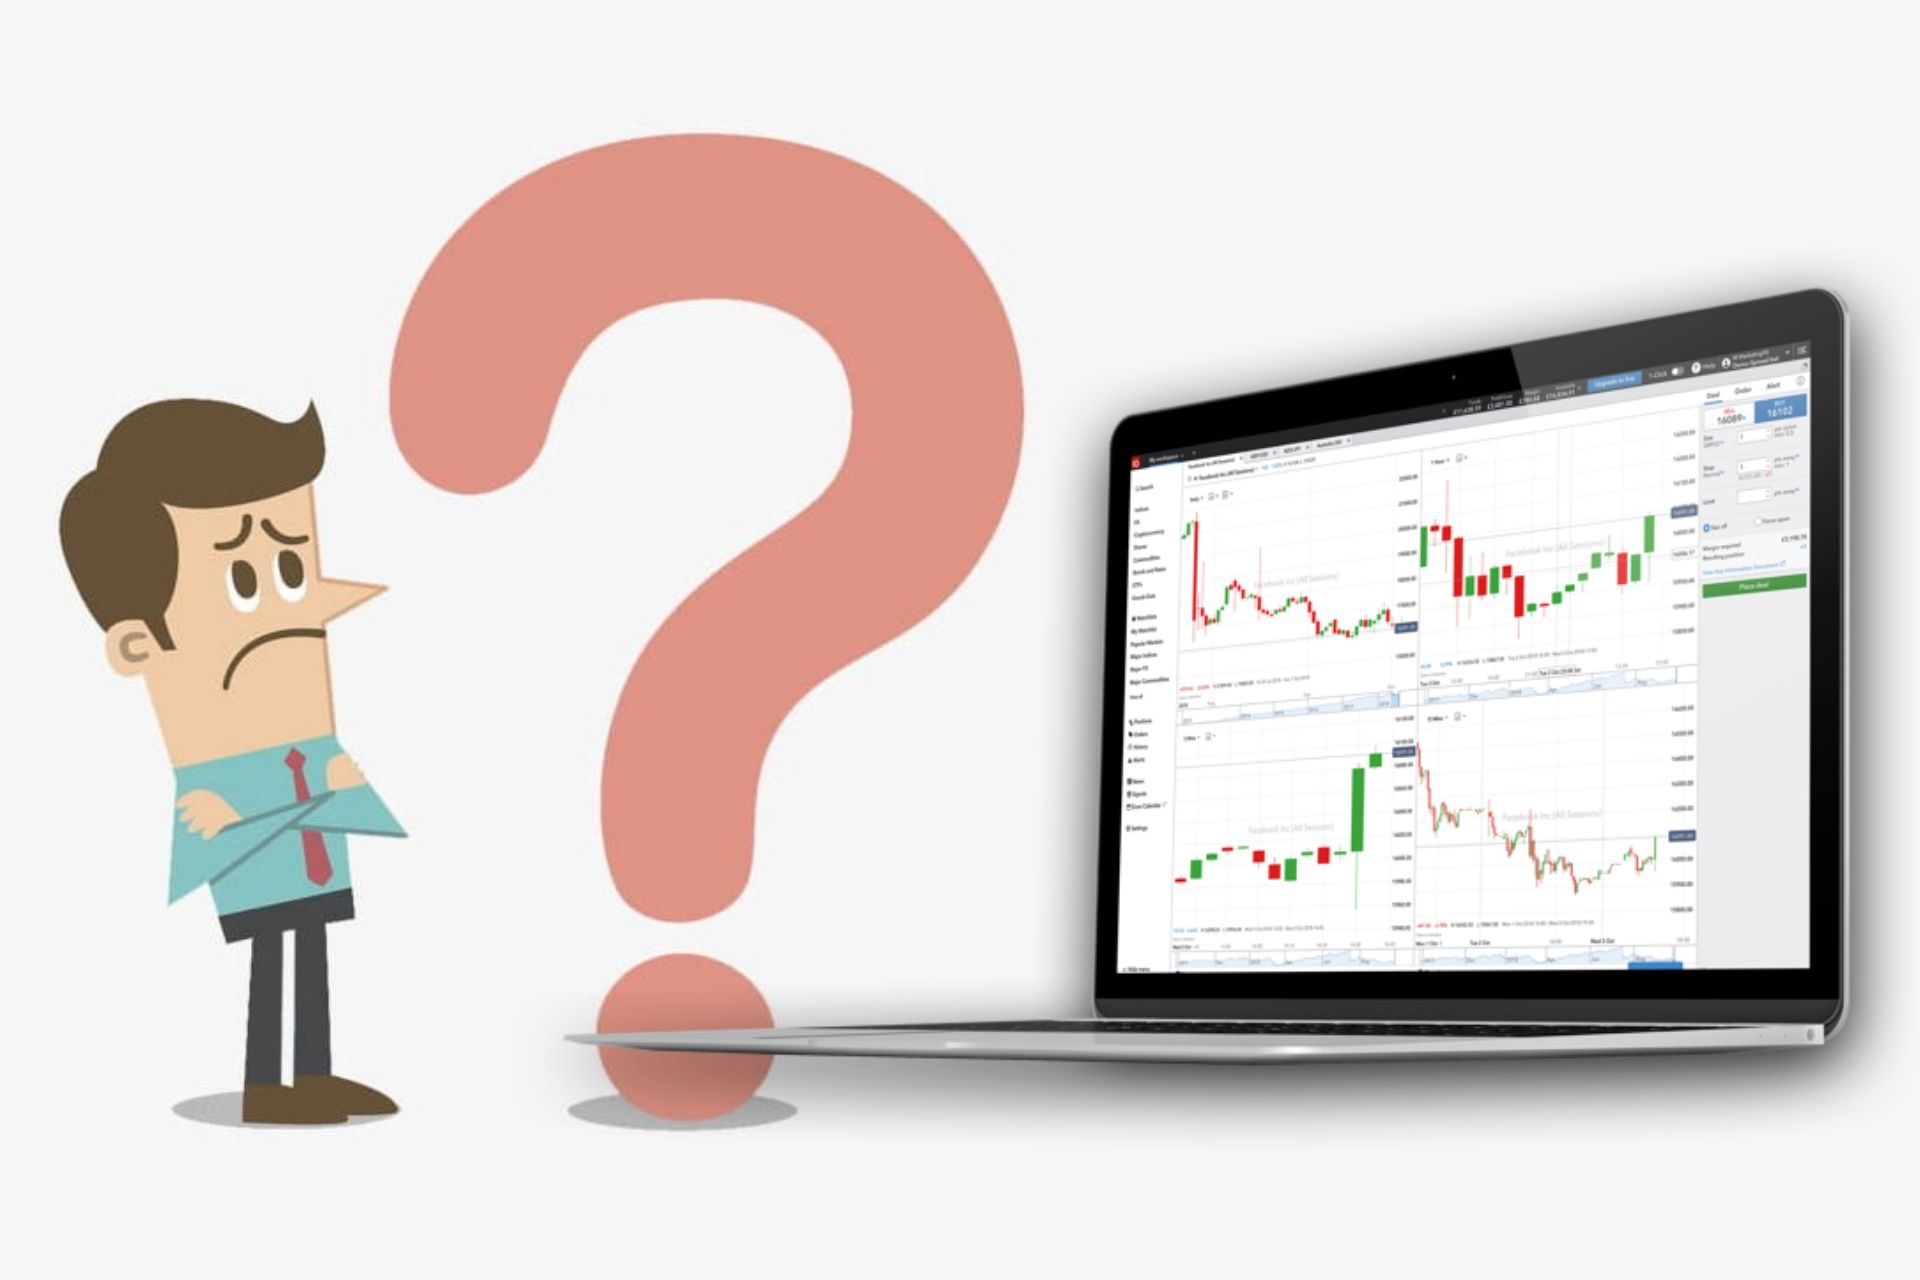 Where to open your Demat & Tradingaccount in india trade brains